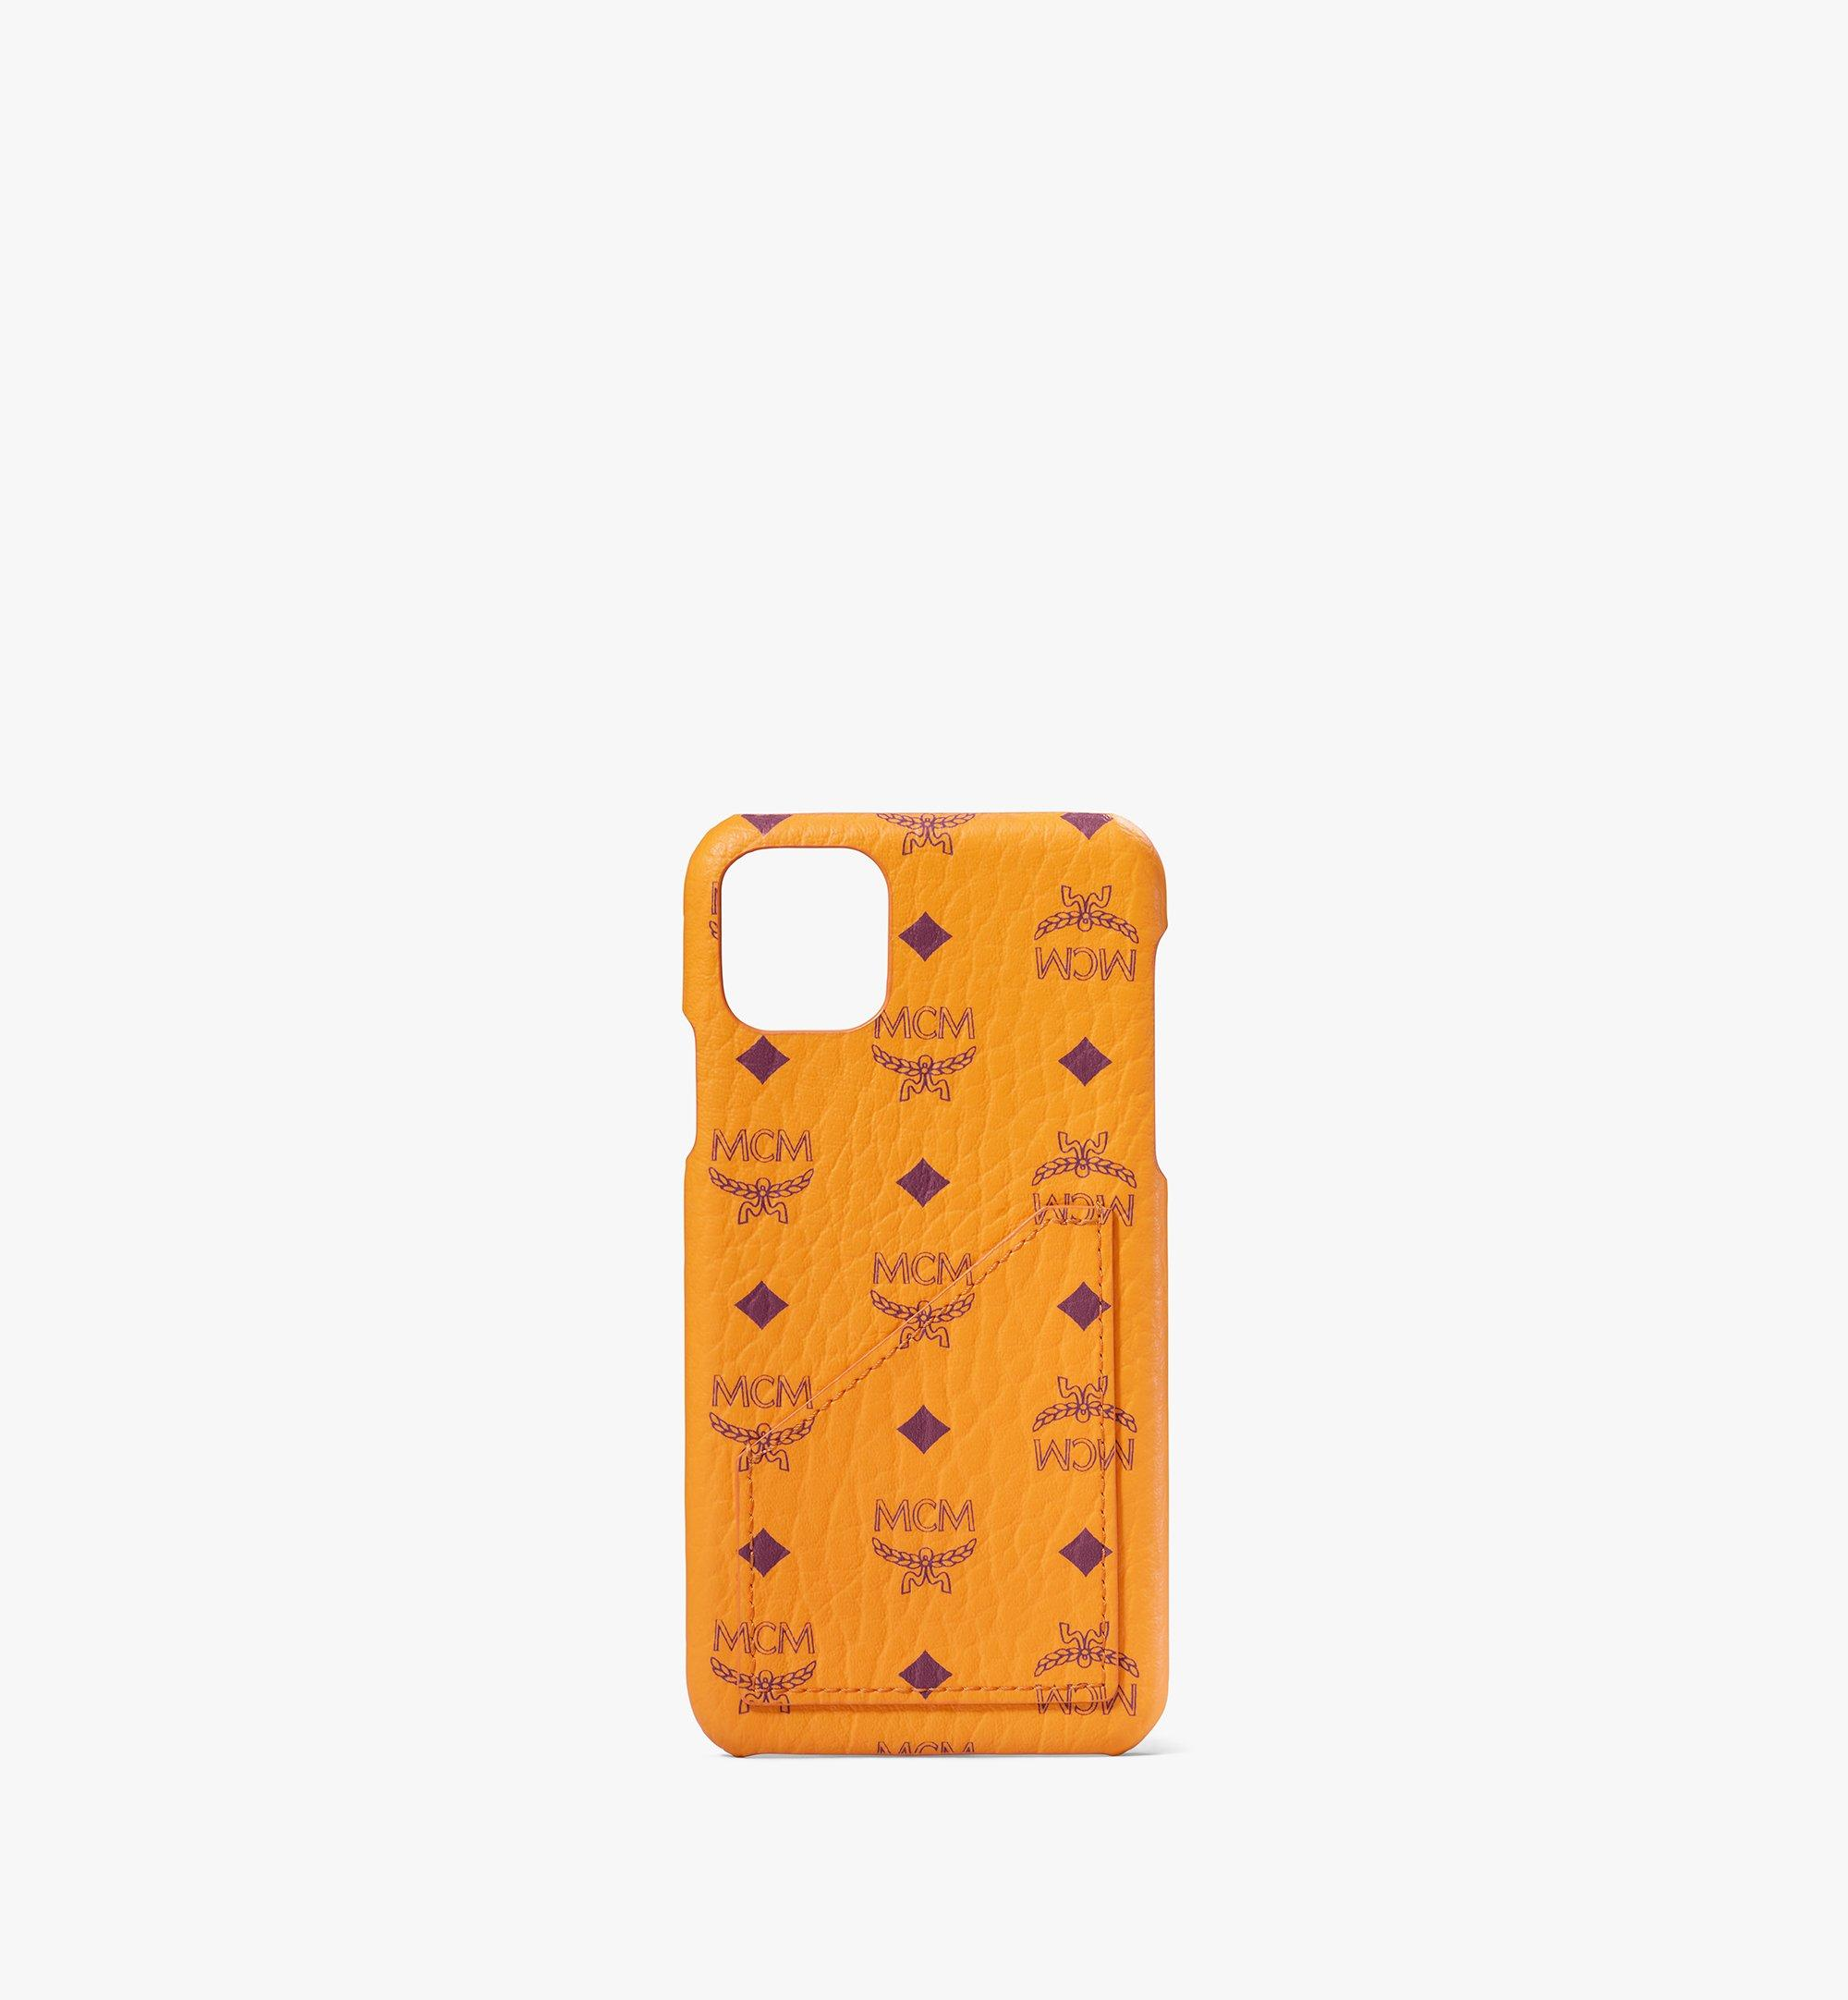 MCM iPhone 11 Pro Max Case in Visetos Original Orange MXEAAVI06O5001 Alternate View 1